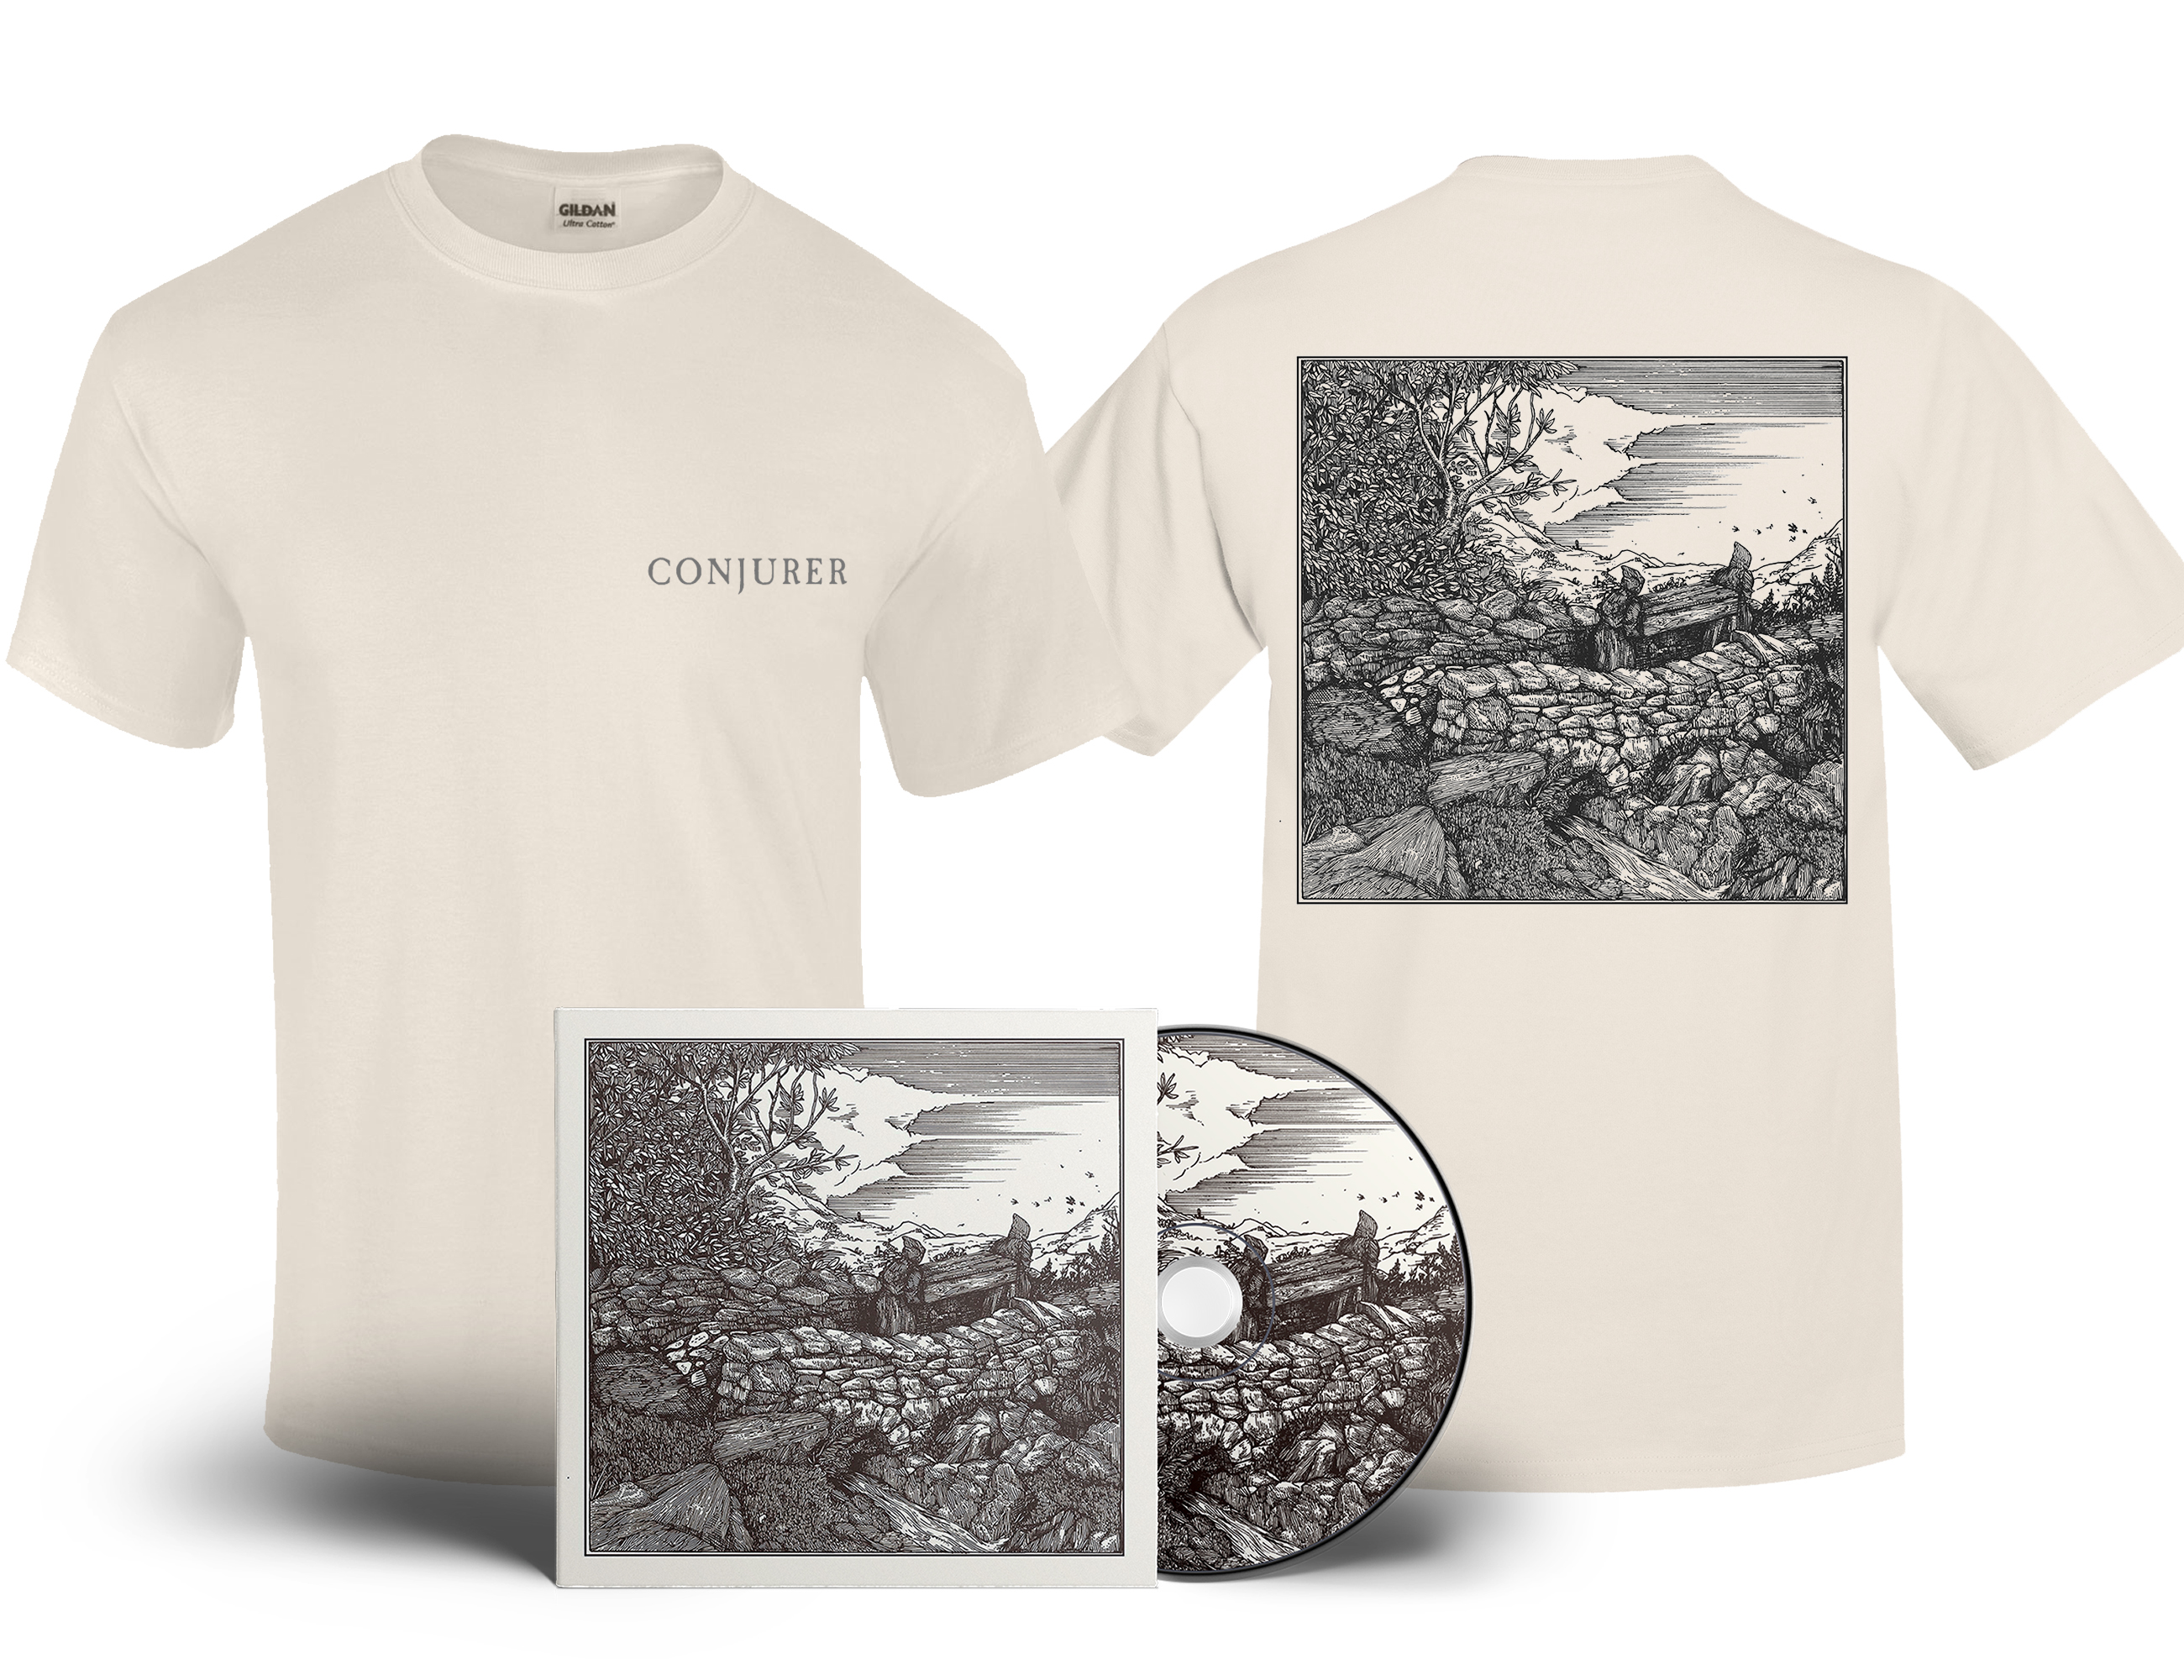 Conjurer 'Mire' digital download +shirt